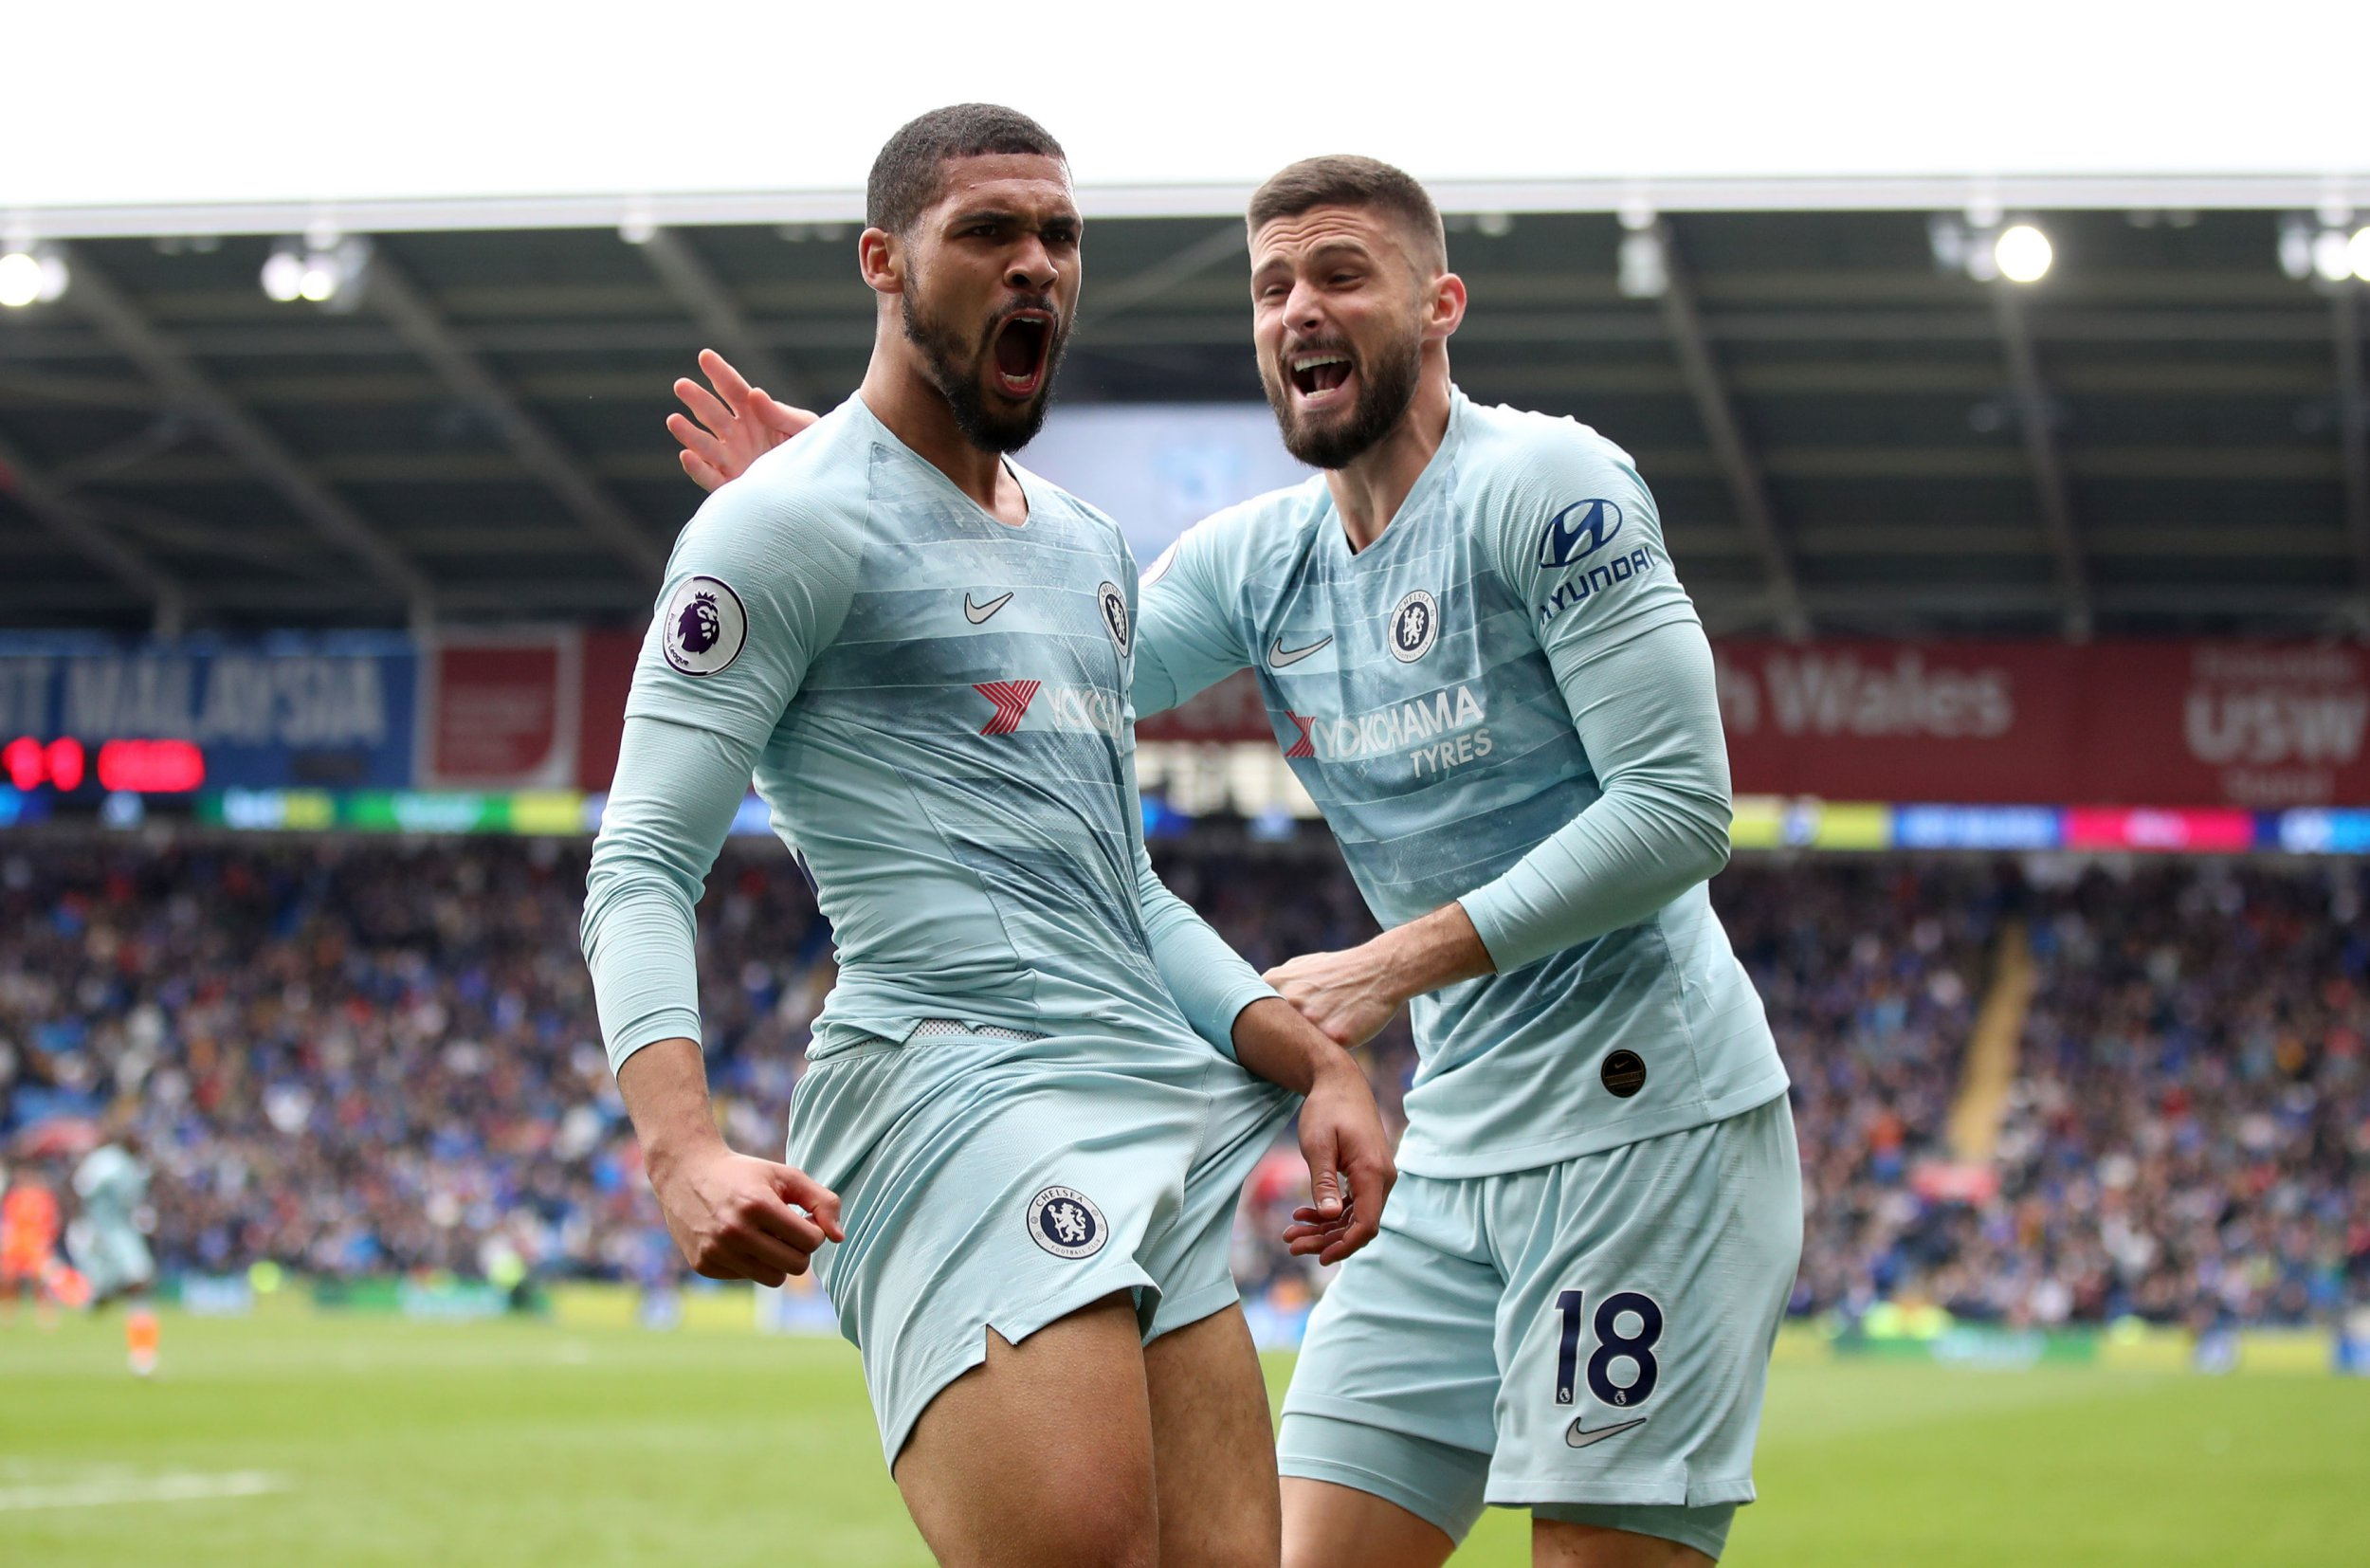 """Chelsea's Ruben Loftus-Cheek (left) celebrates scoring his side's second goal of the game during the Premier League match at the Cardiff City Stadium, Cardiff. PRESS ASSOCIATION Photo. Picture date: Sunday March 31, 2019. See PA story SOCCER Cardiff. Photo credit should read: Nick Potts/PA Wire. RESTRICTIONS: EDITORIAL USE ONLY No use with unauthorised audio, video, data, fixture lists, club/league logos or """"live"""" services. Online in-match use limited to 120 images, no video emulation. No use in betting, games or single club/league/player publications."""